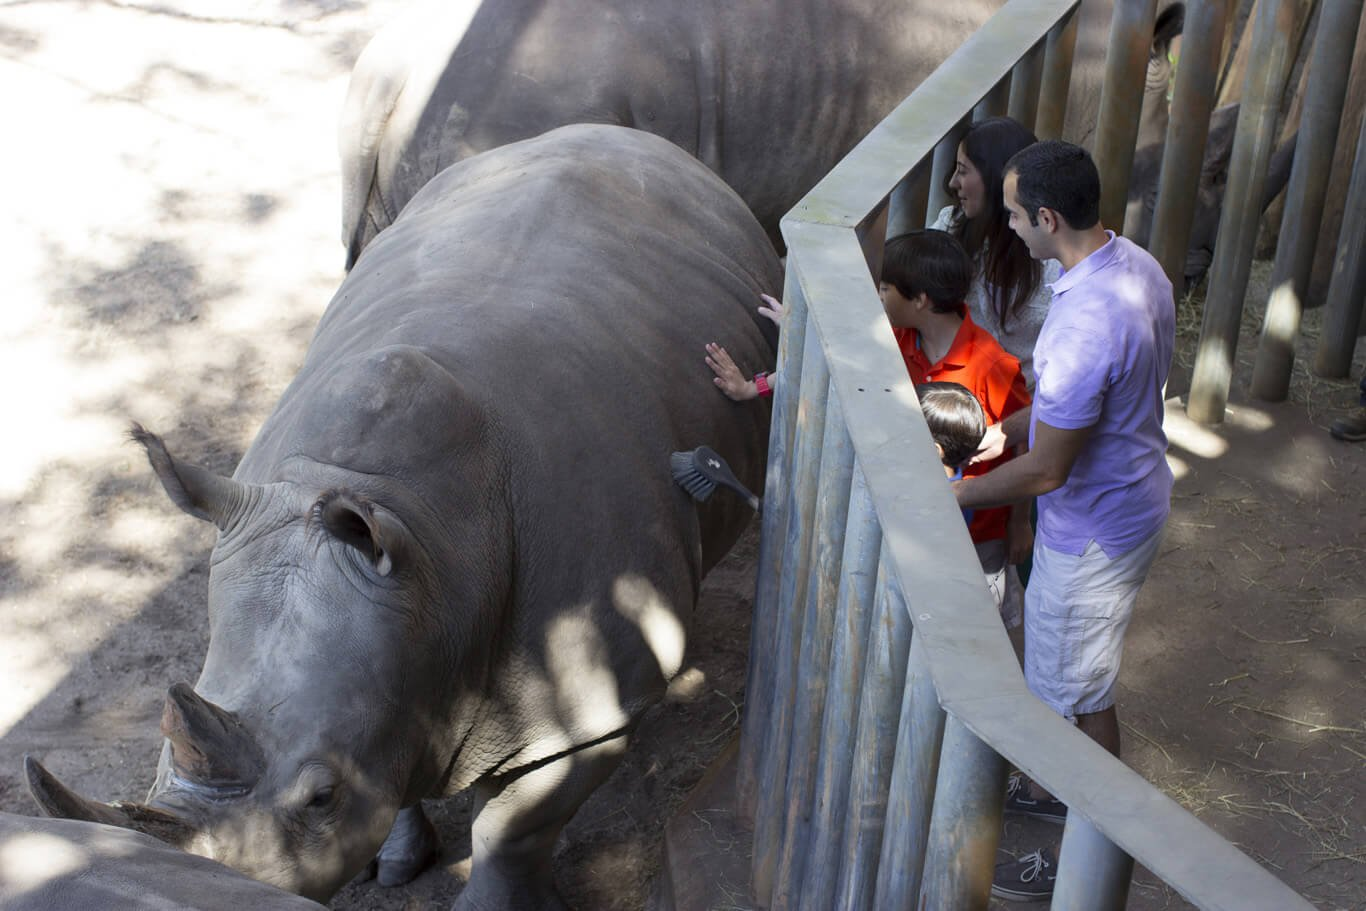 Child airlifted to hospital after falling into a RHINO enclosure at Florida zoo